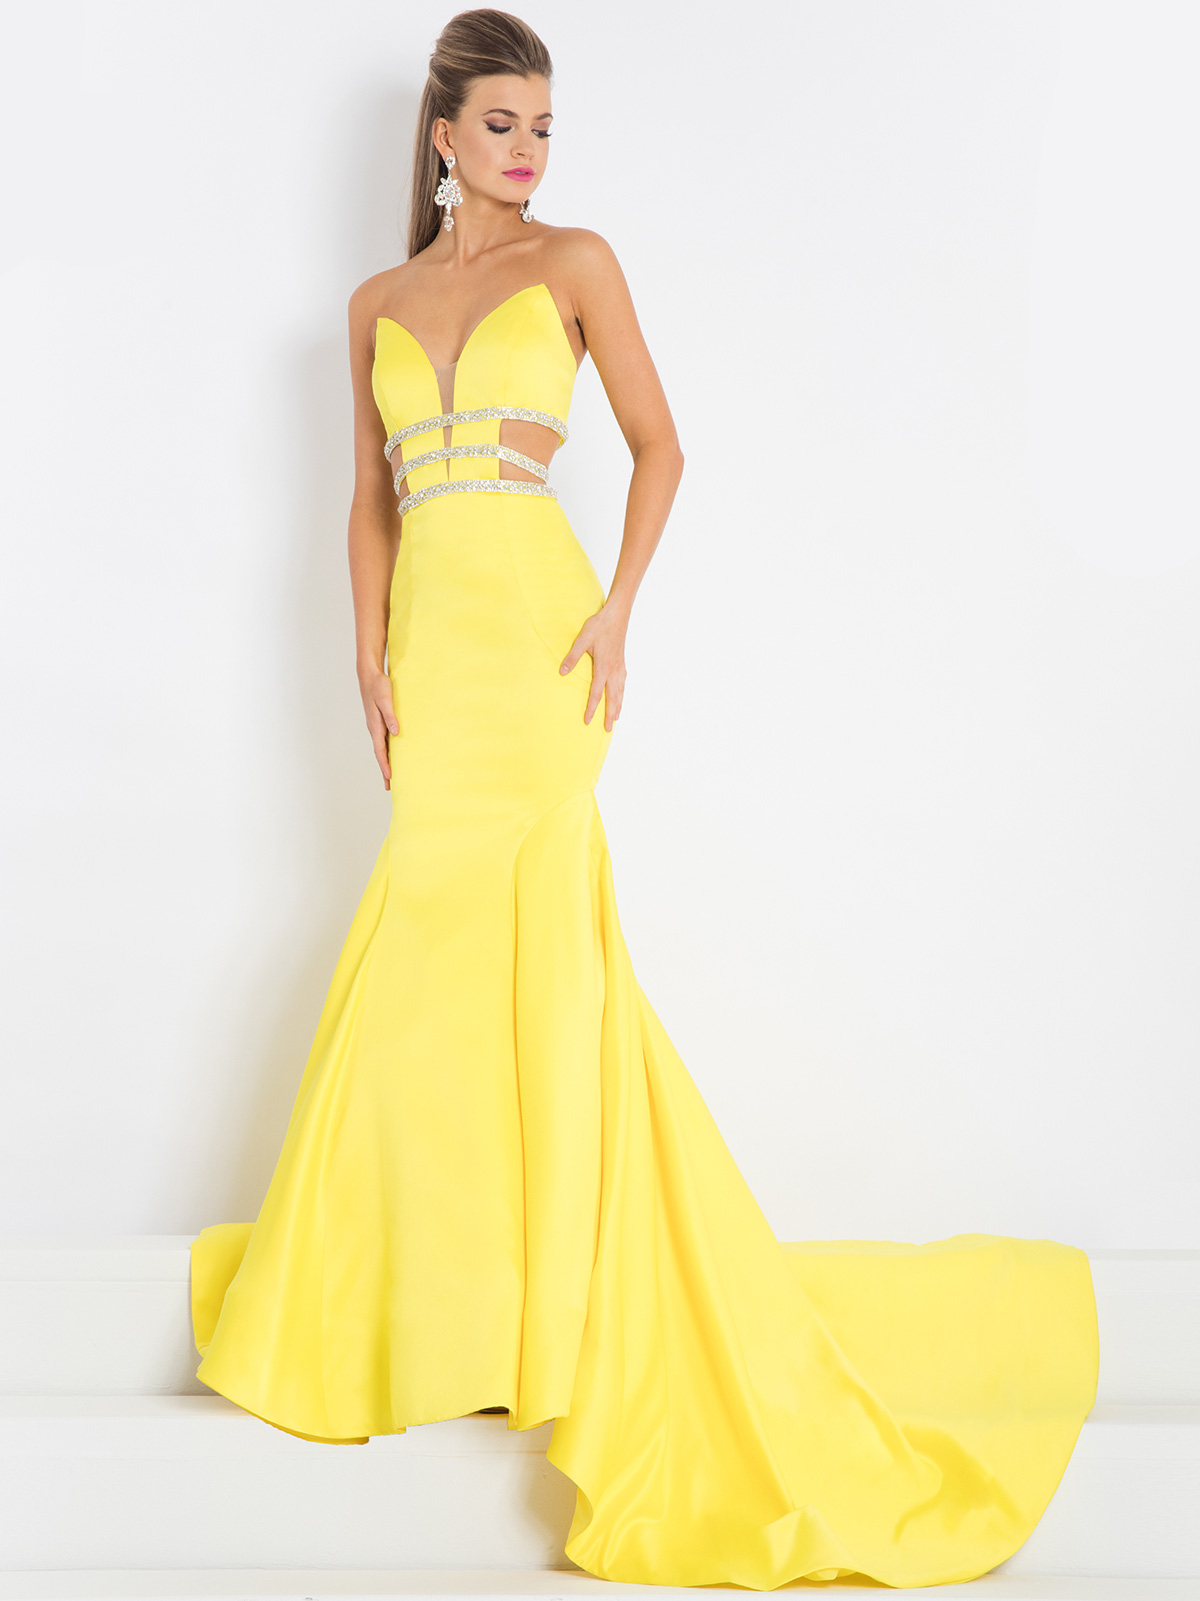 Prima Donna 5917 Plunging Sweetheart Pageant Dress|PageantDesigns.com